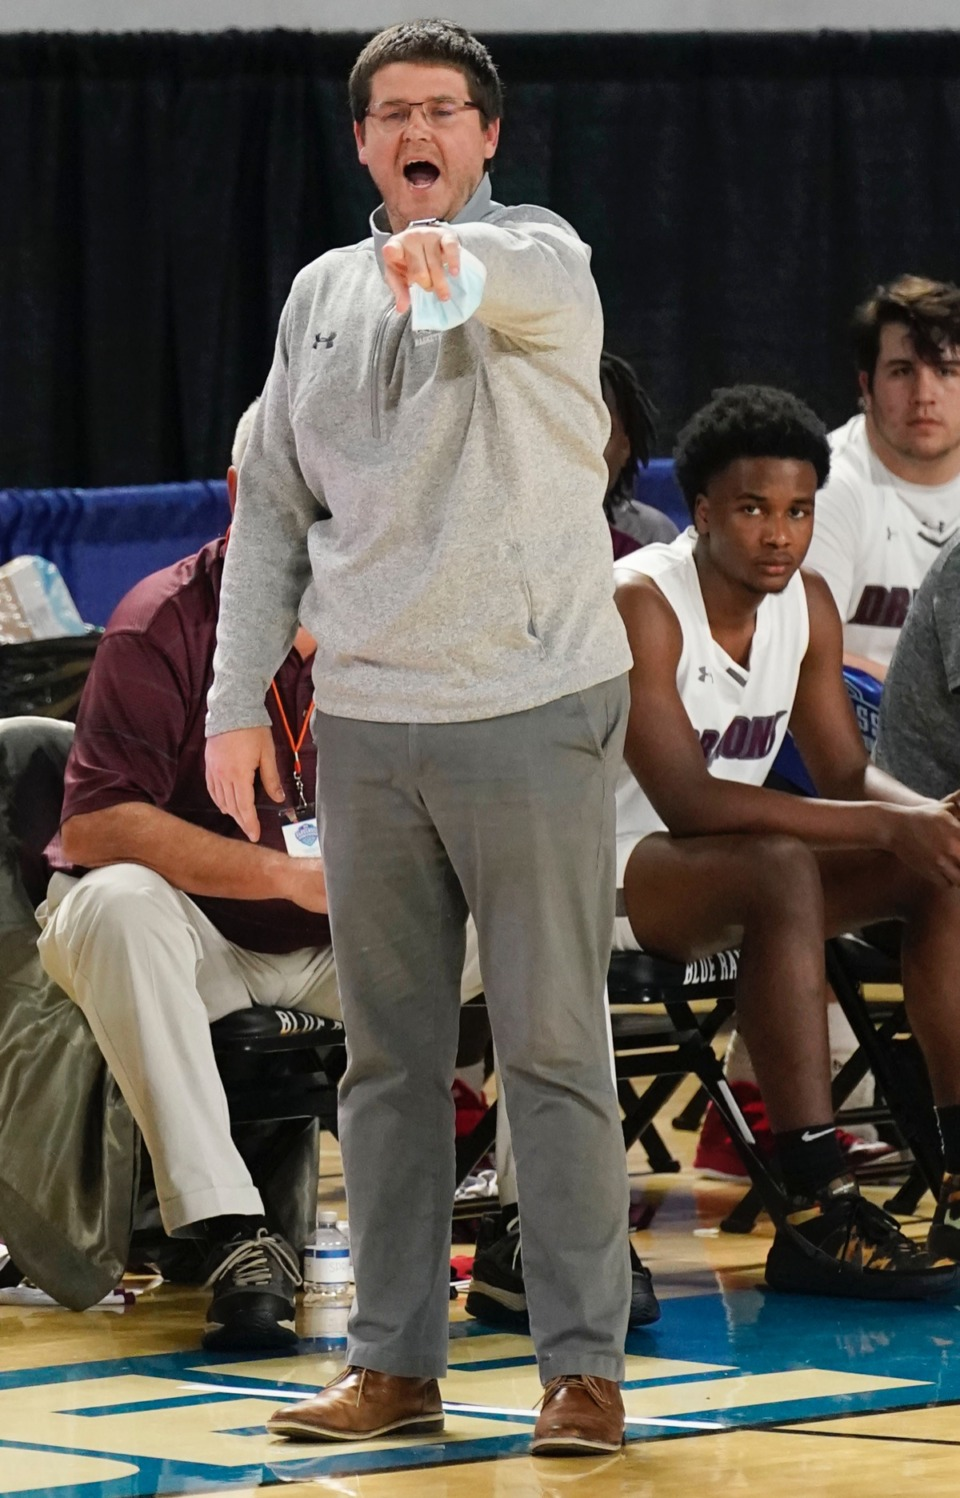 <strong>Collierville head coach Scott Robinson shouts instructions to his team as Collierville plays Cane Ridge&nbsp;on March 19 in Murfreesboro, Tennessee.</strong> (Larry McCormack/Special to The Daily Memphian)